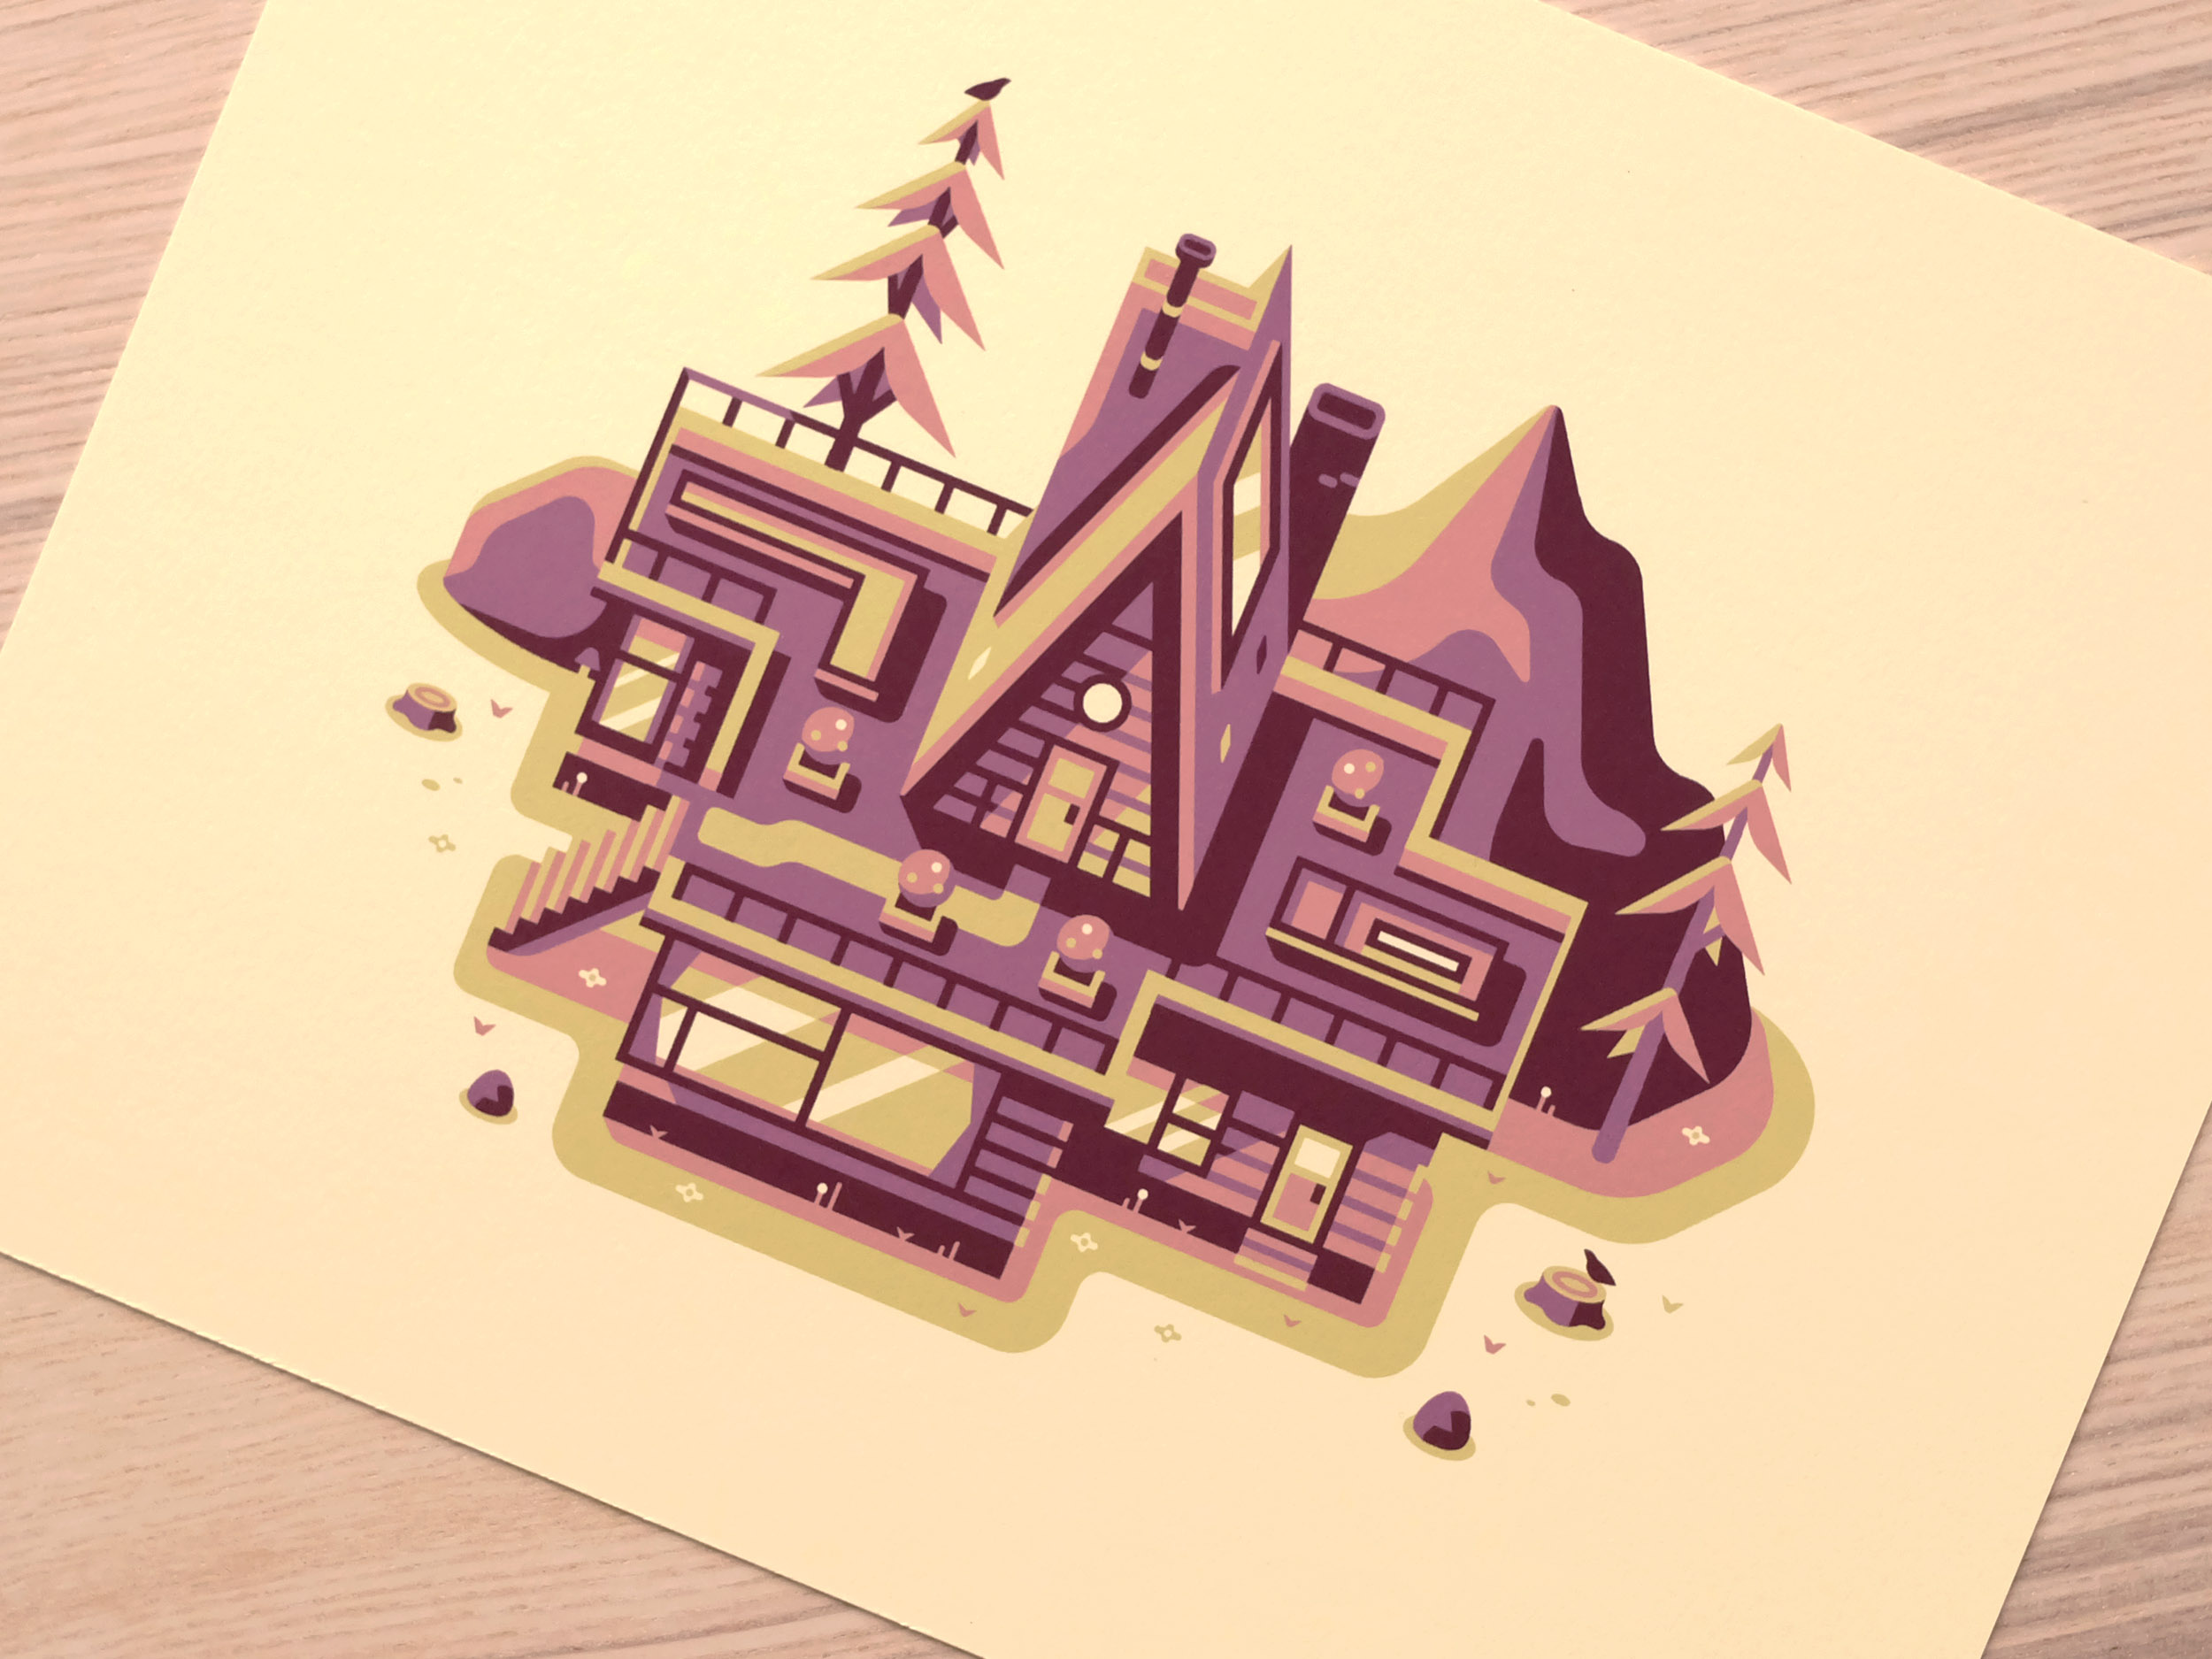 Mountain - Modern Homes prints by Canopy Design and Illustration